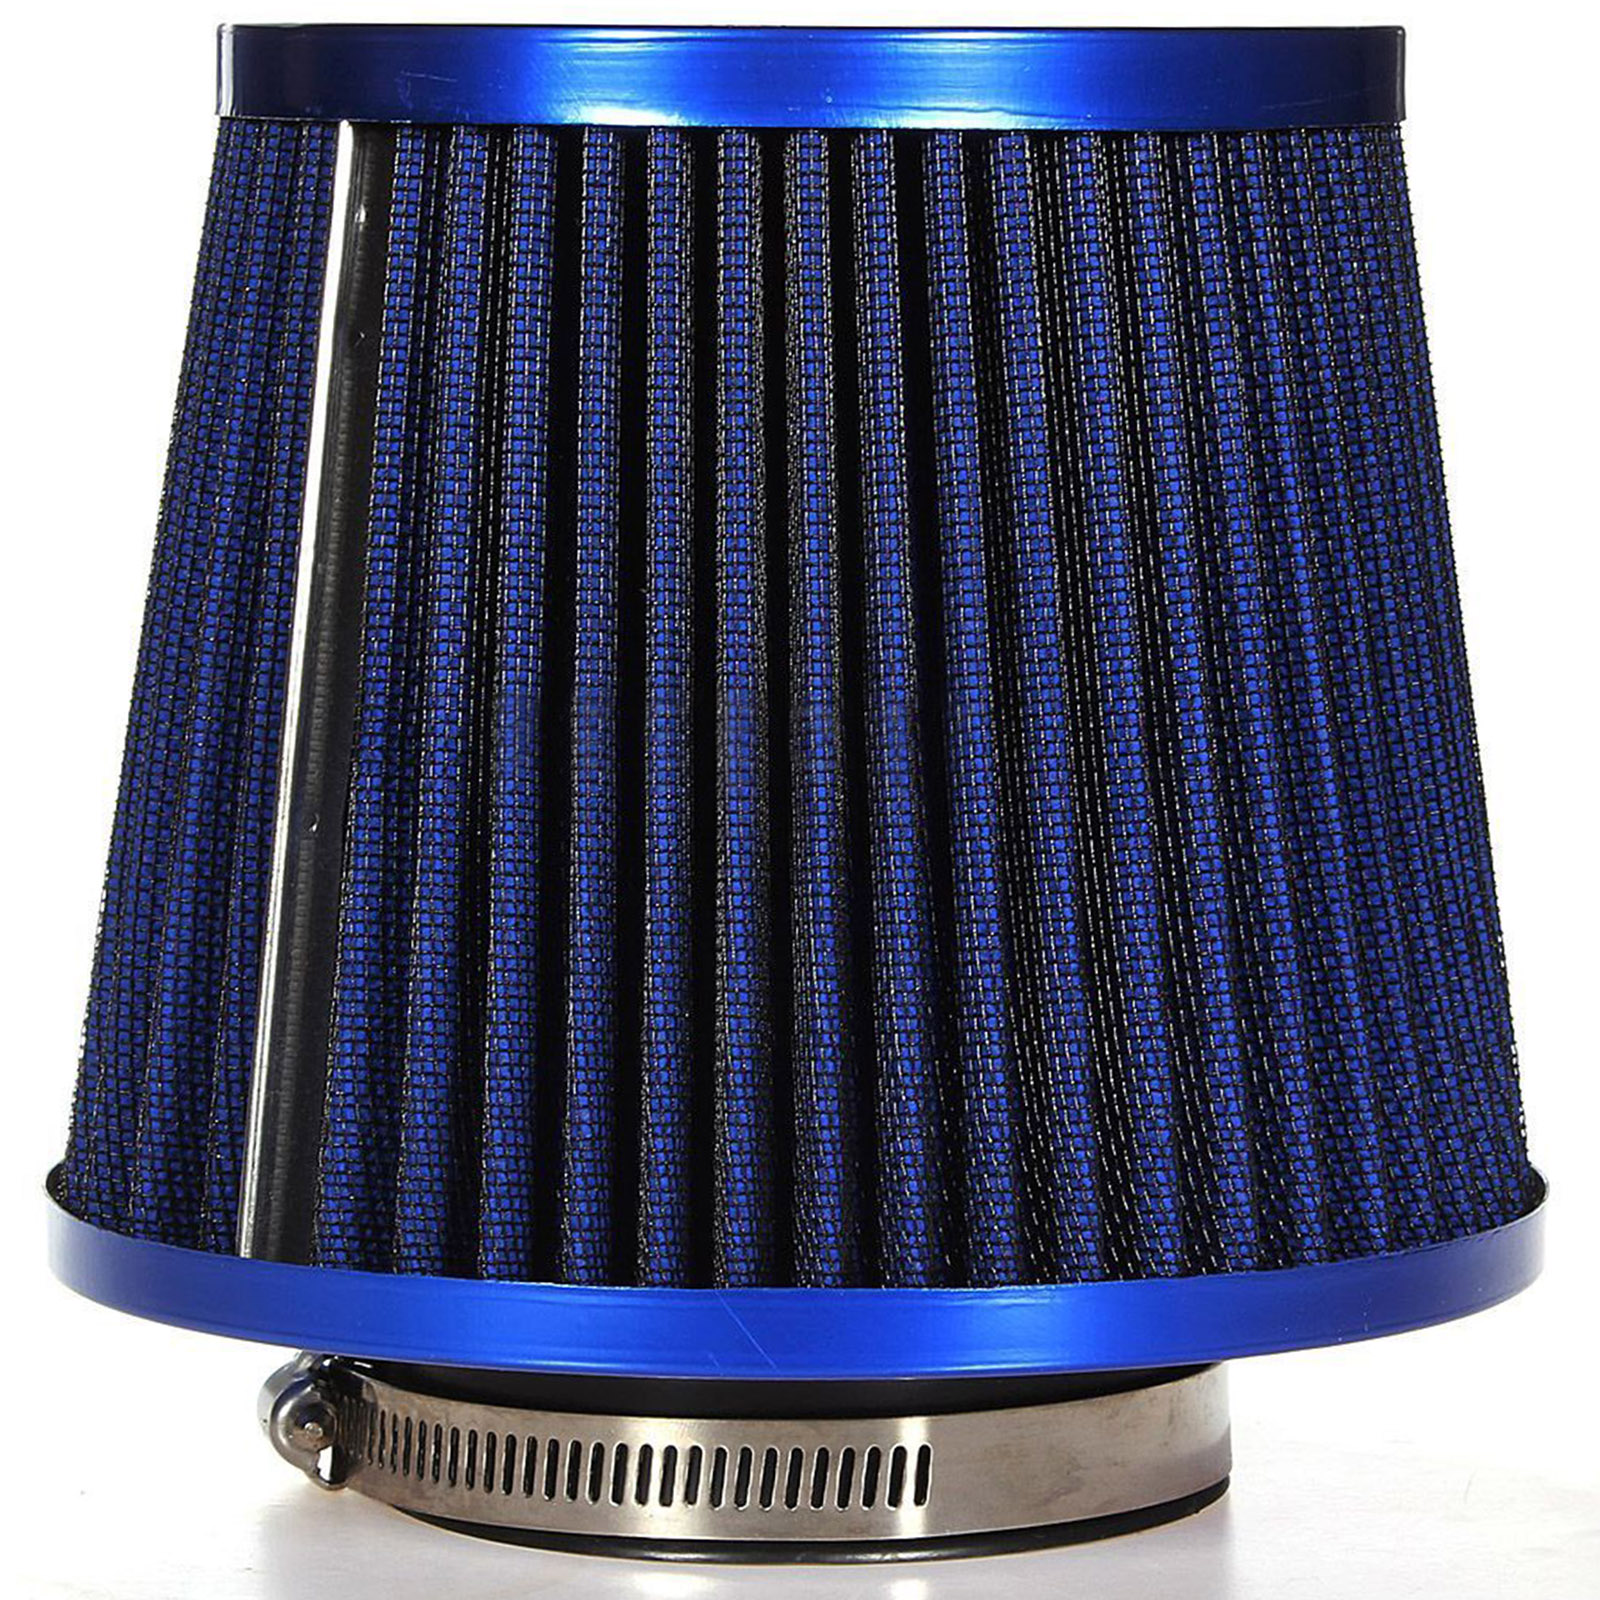 JX-LCLYL Universal Car Air Intake Filter Induction Kit High Power Sports Mesh Cone BlueJX-LCLYL Universal Car Air Intake Filter Induction Kit High Power Sports Mesh Cone Blue